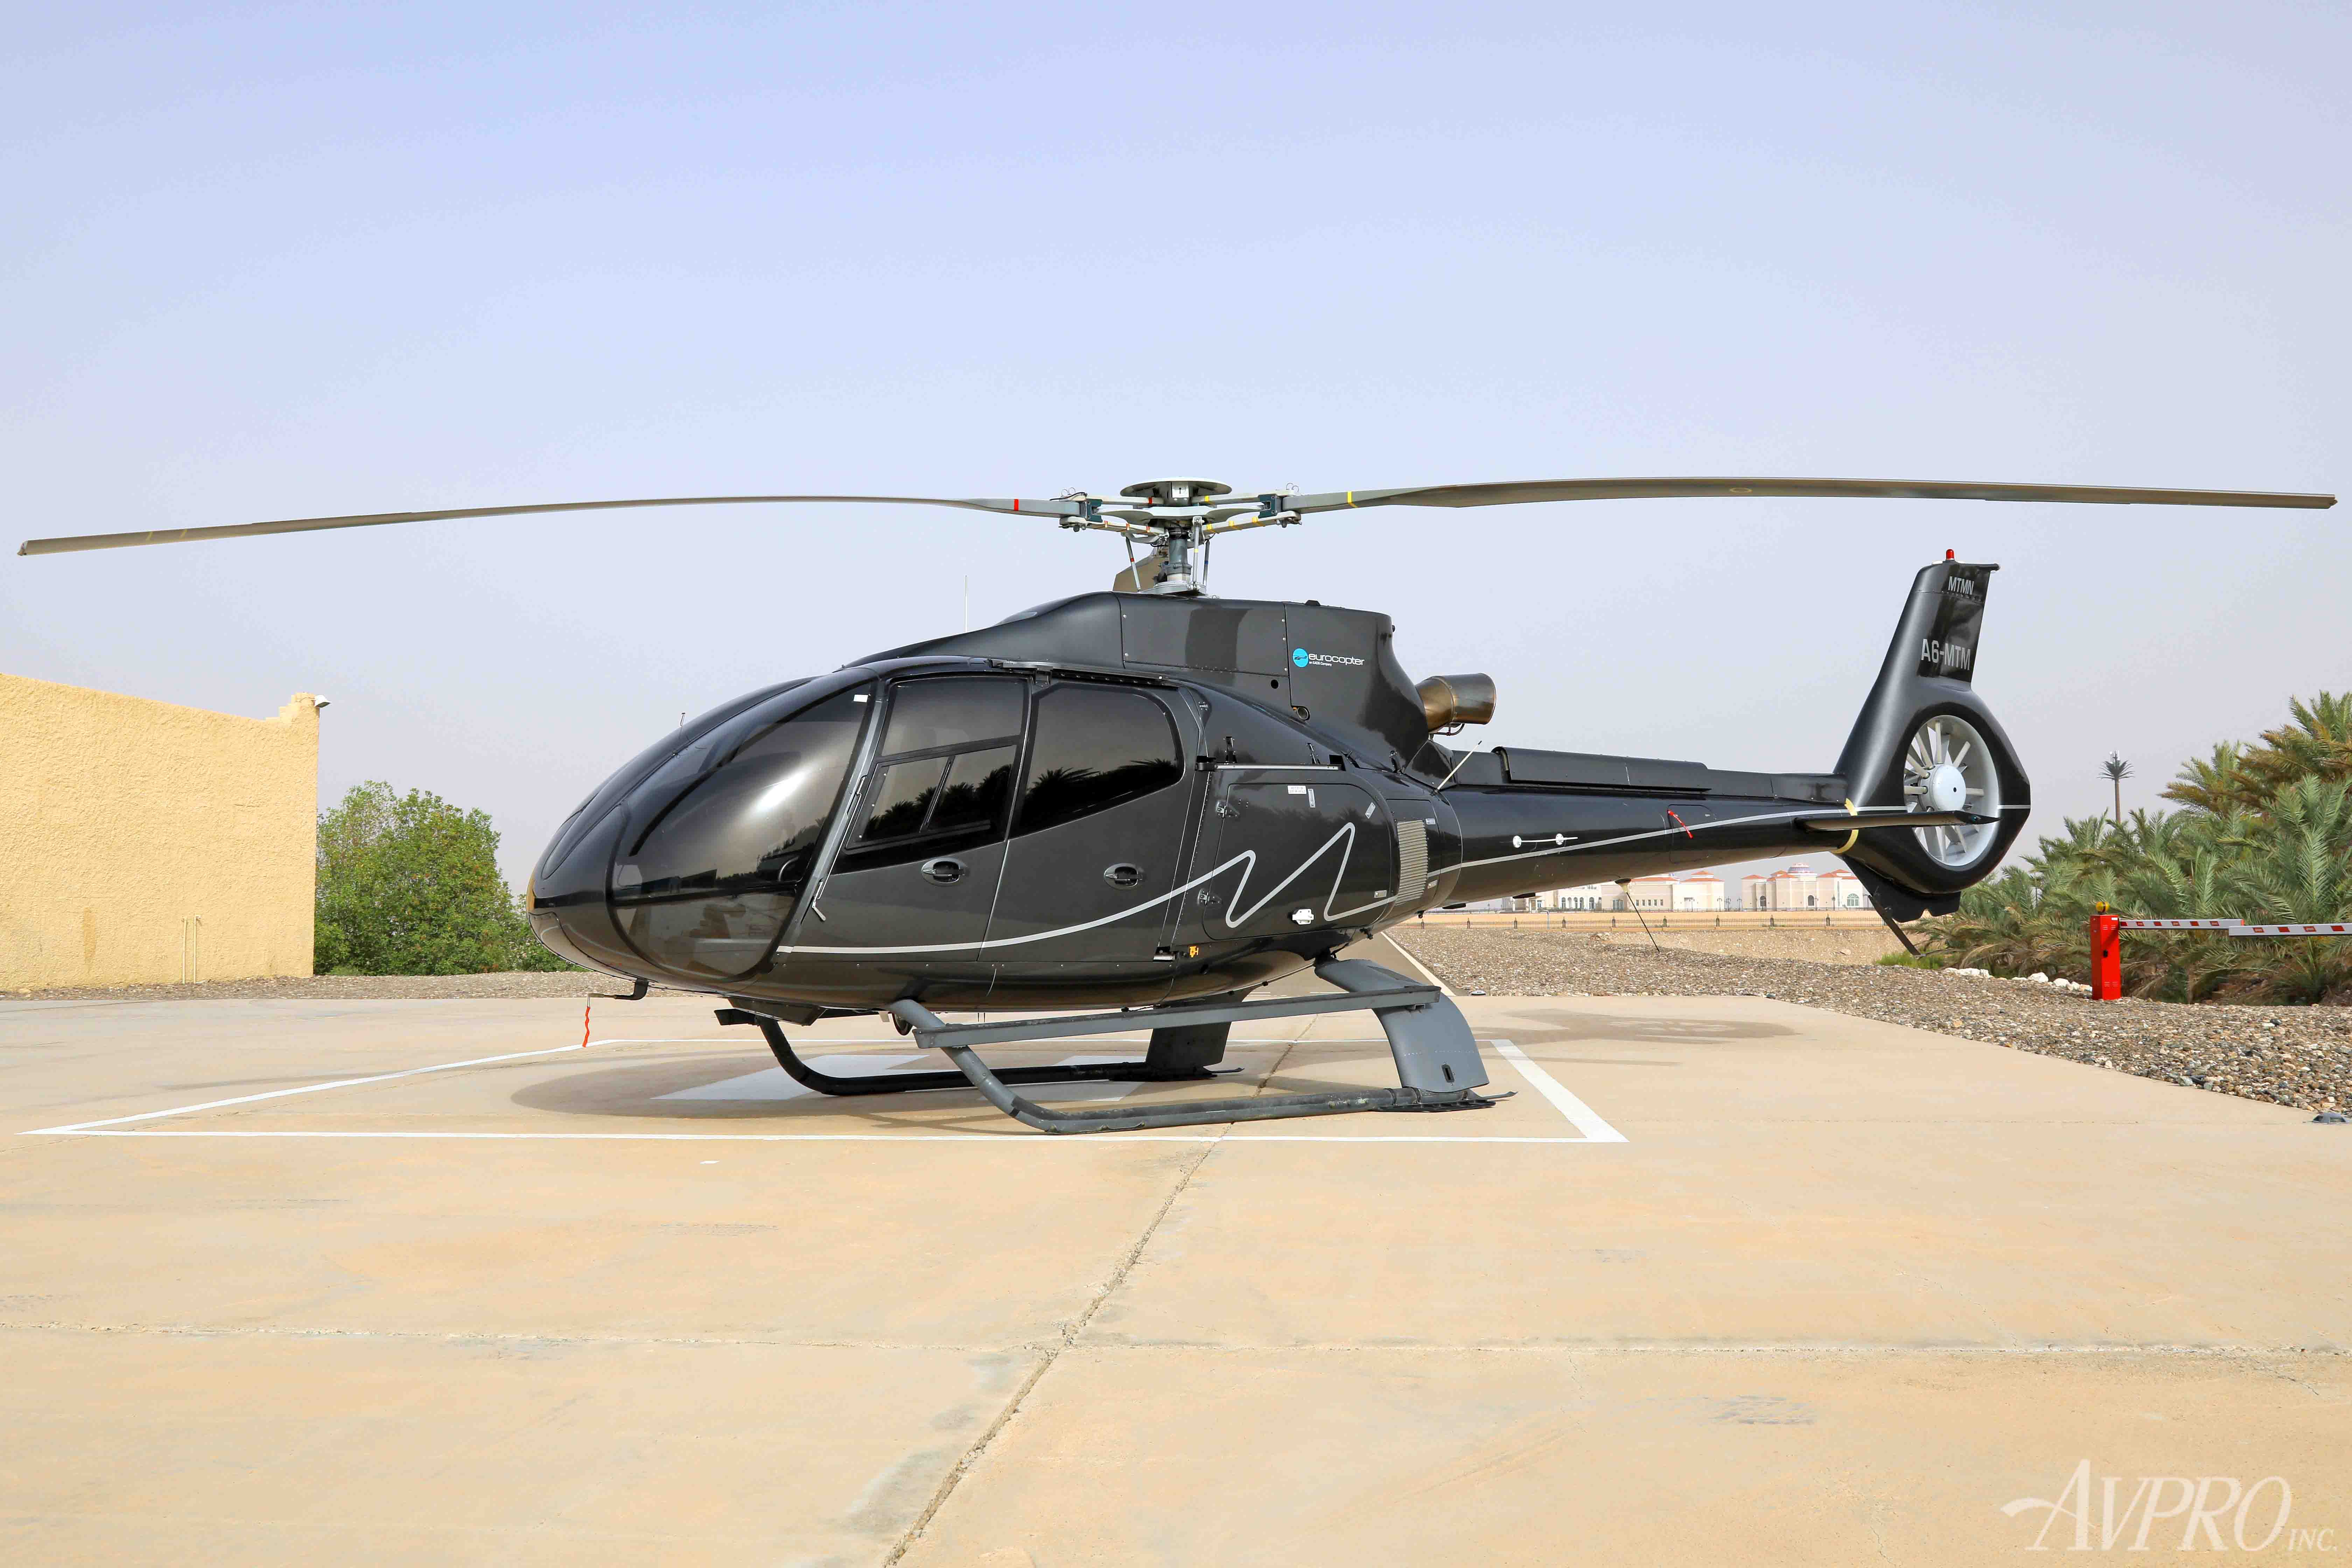 Aircraft Listing - Eurocopter EC-130-B4 listed for sale